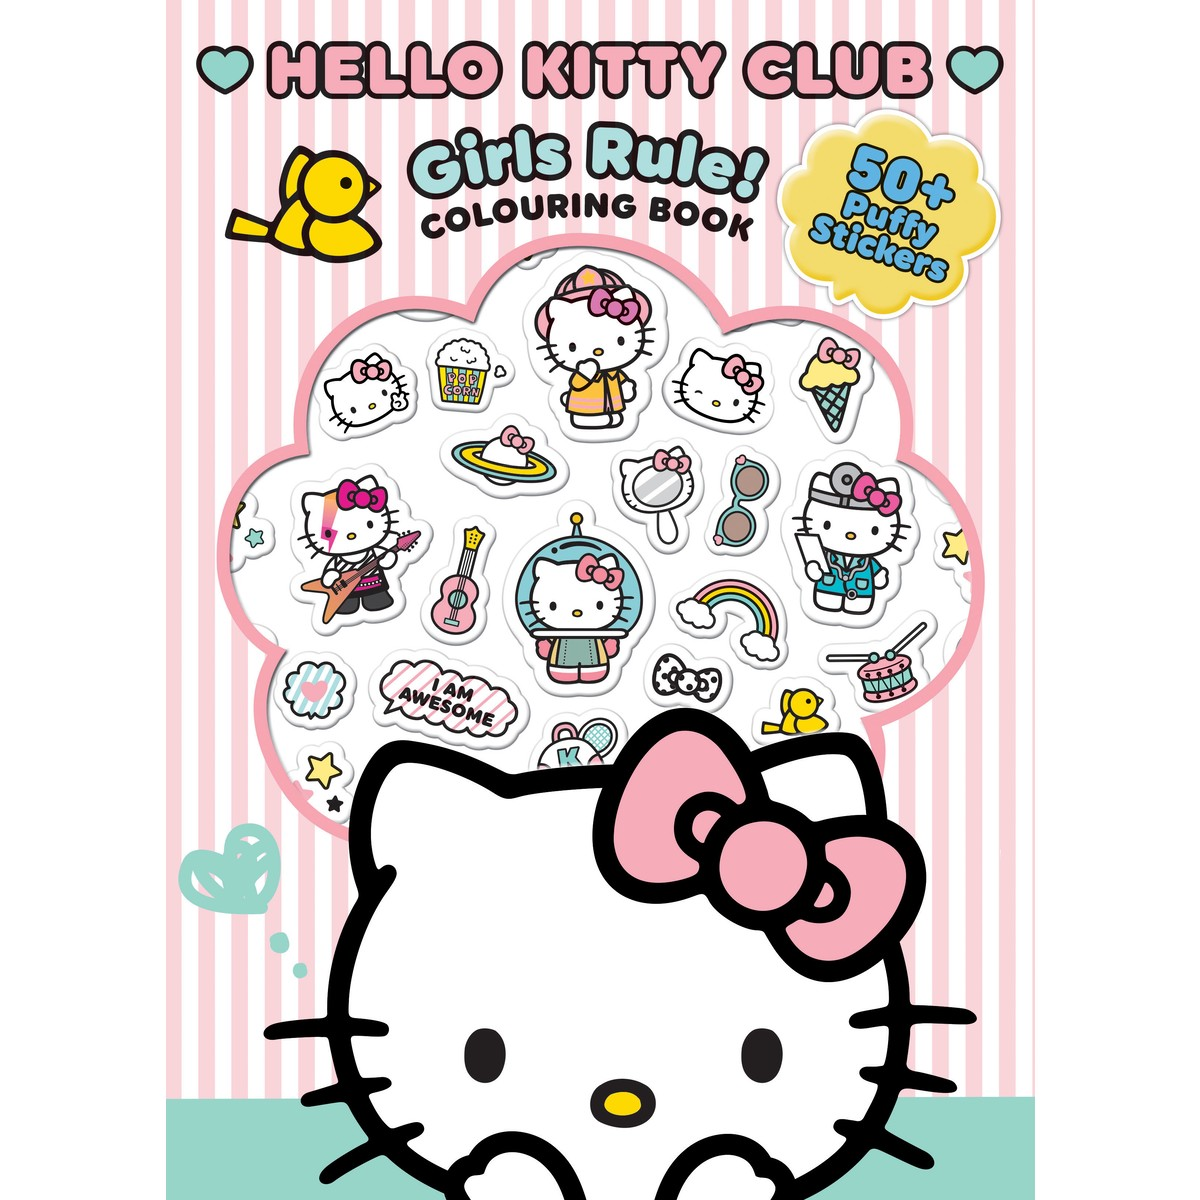 Hello Kitty Club Girls Rule! Colouring Book